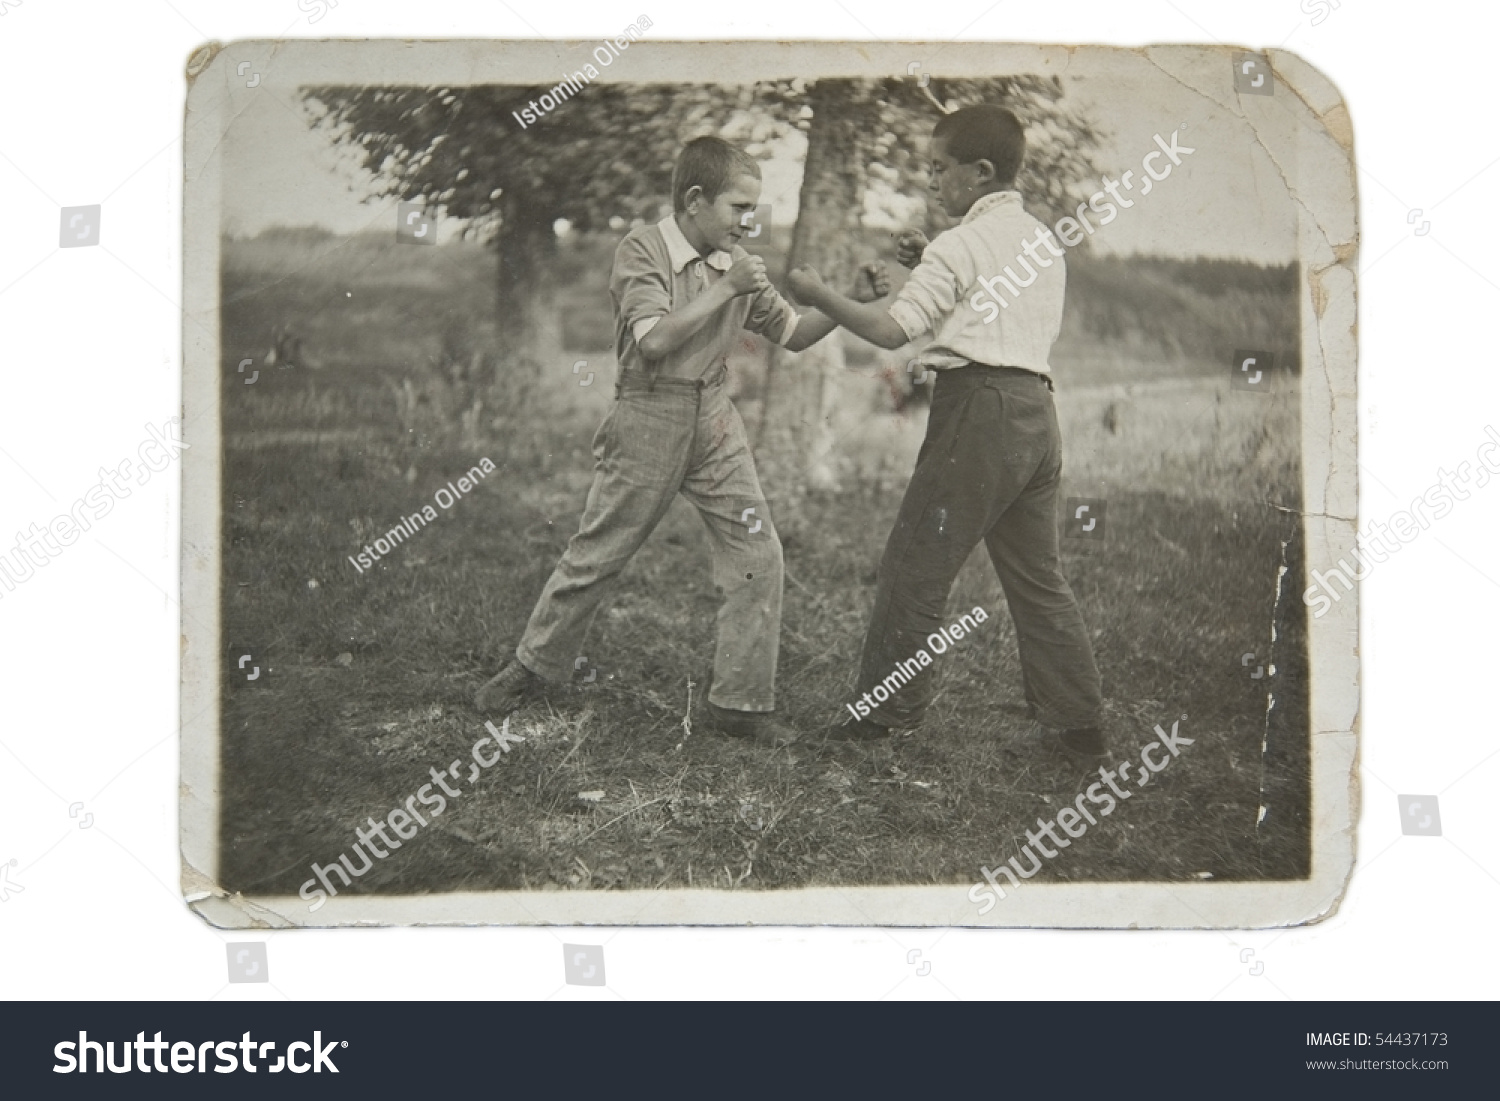 Two boys are fighting, fist fight in a Ukrainian village, an old photo